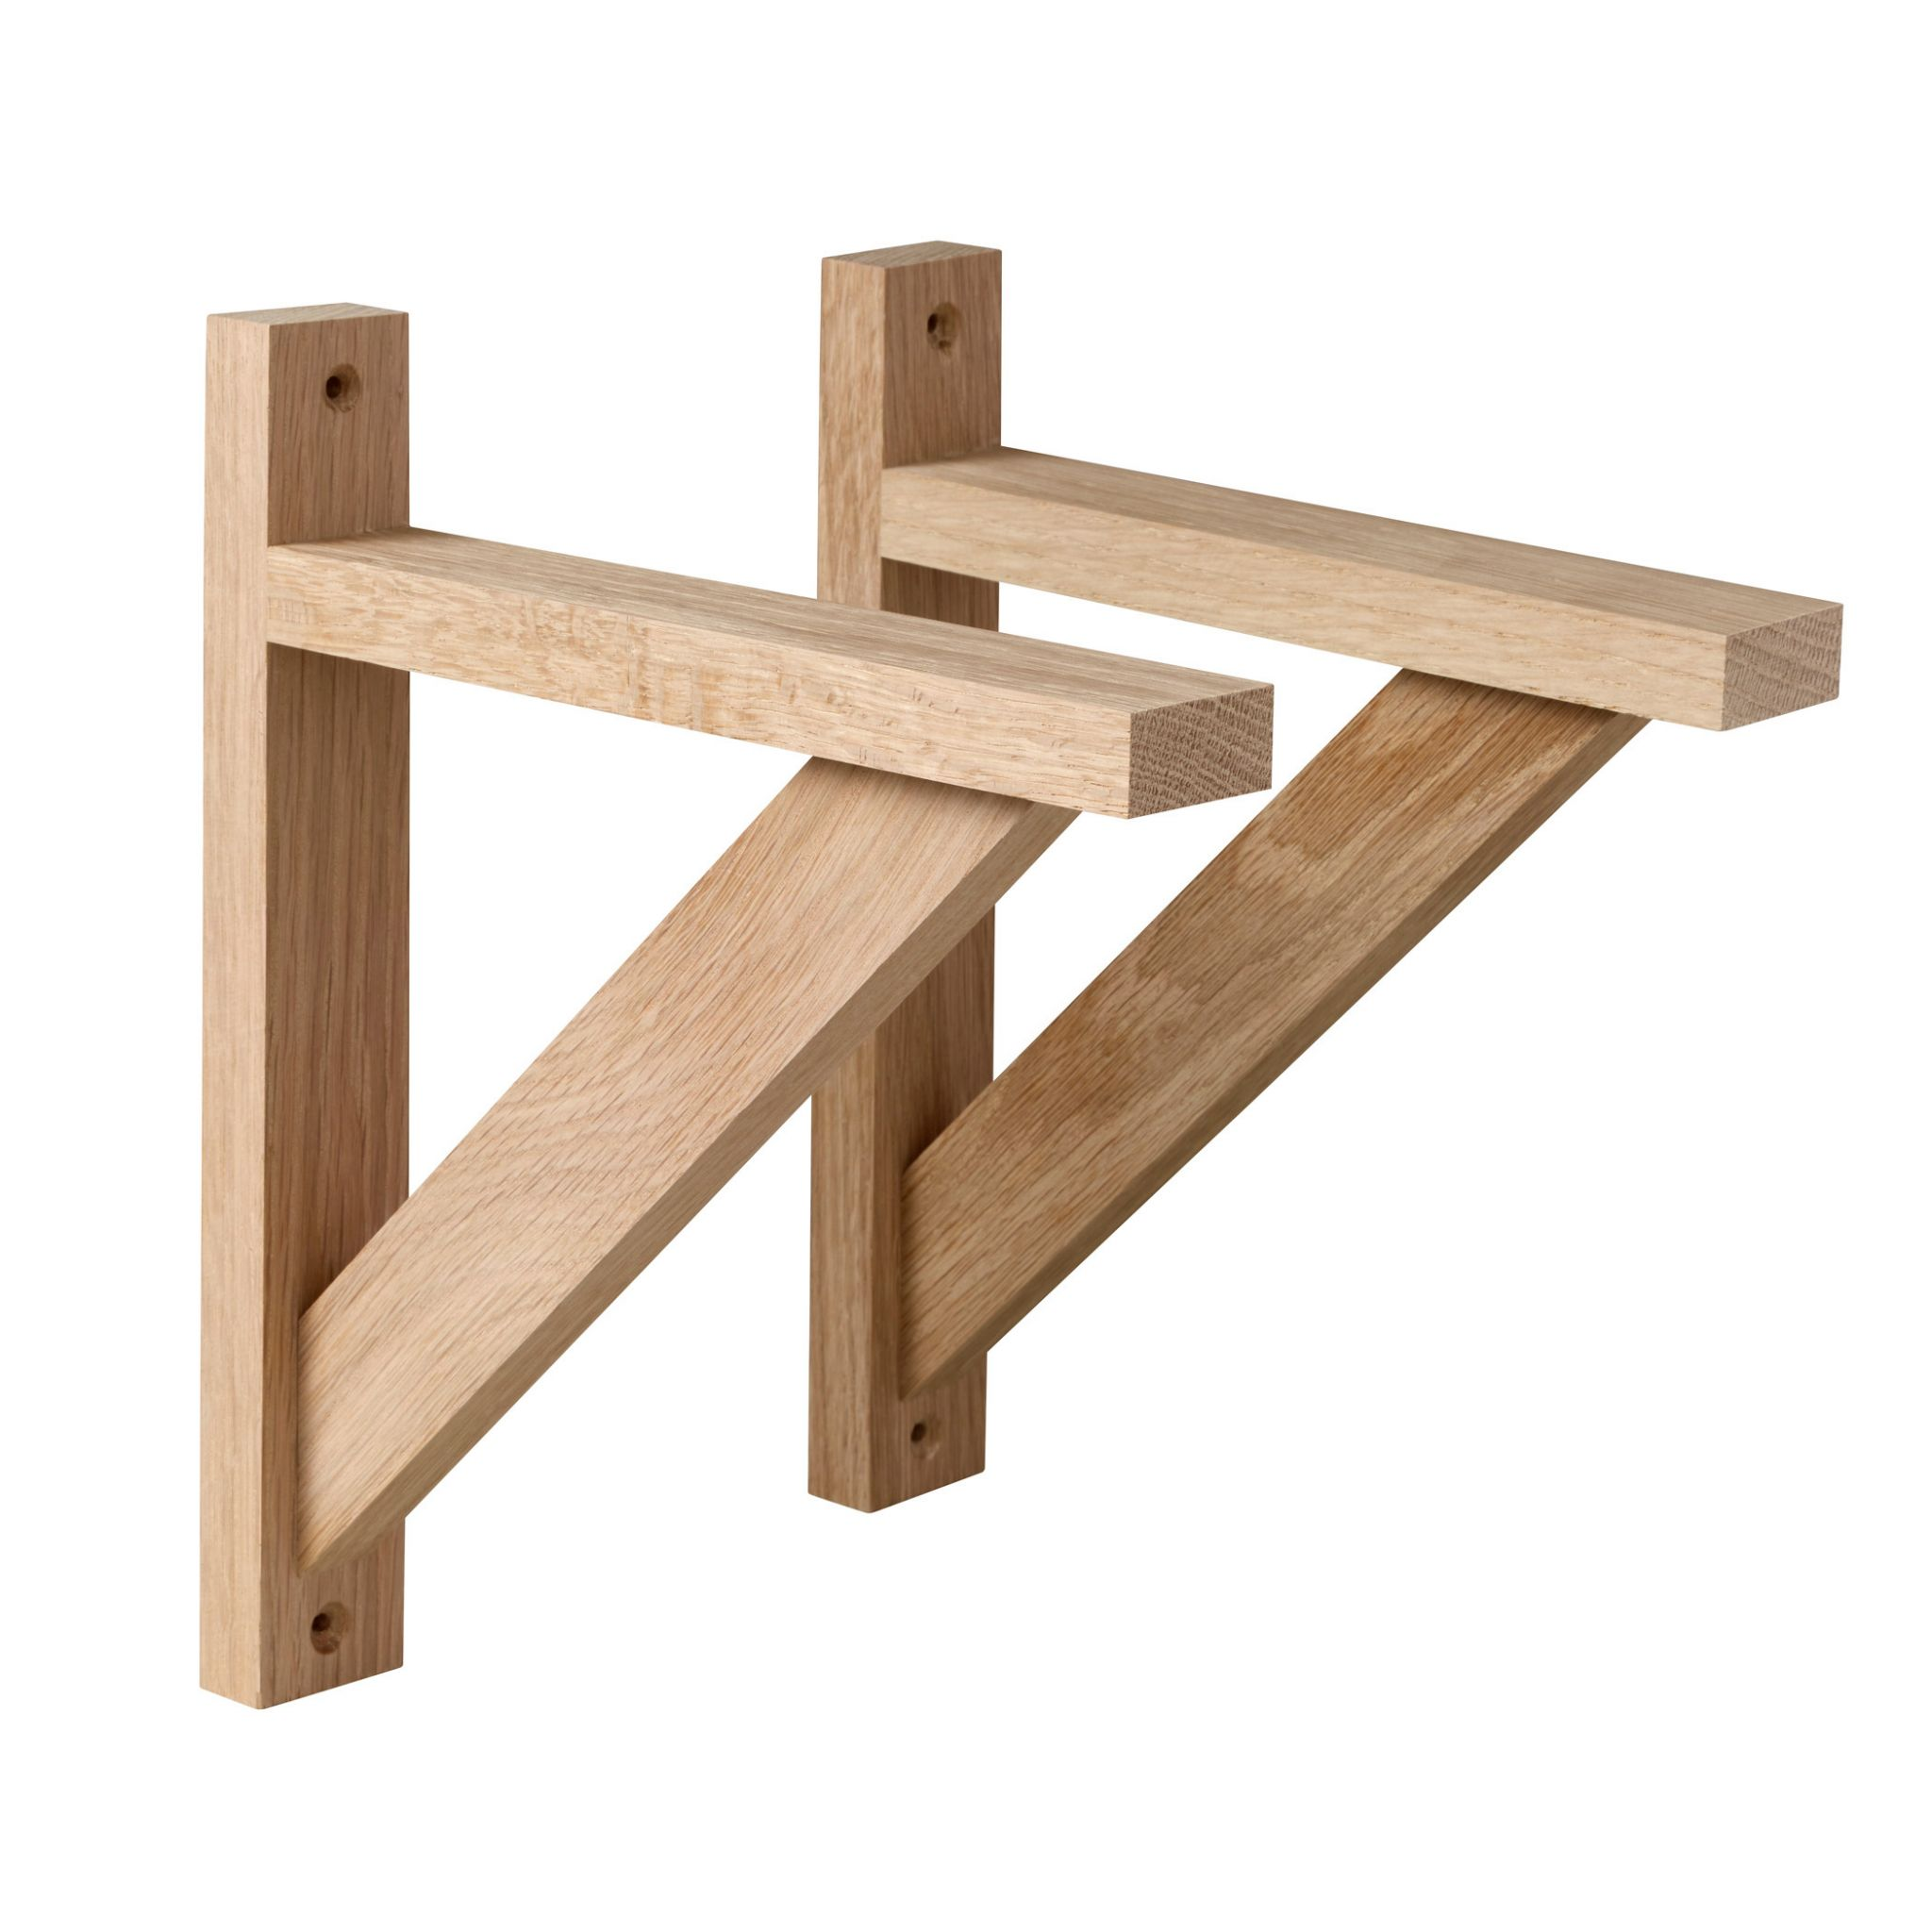 OAK WALL SHELF BRACKETS